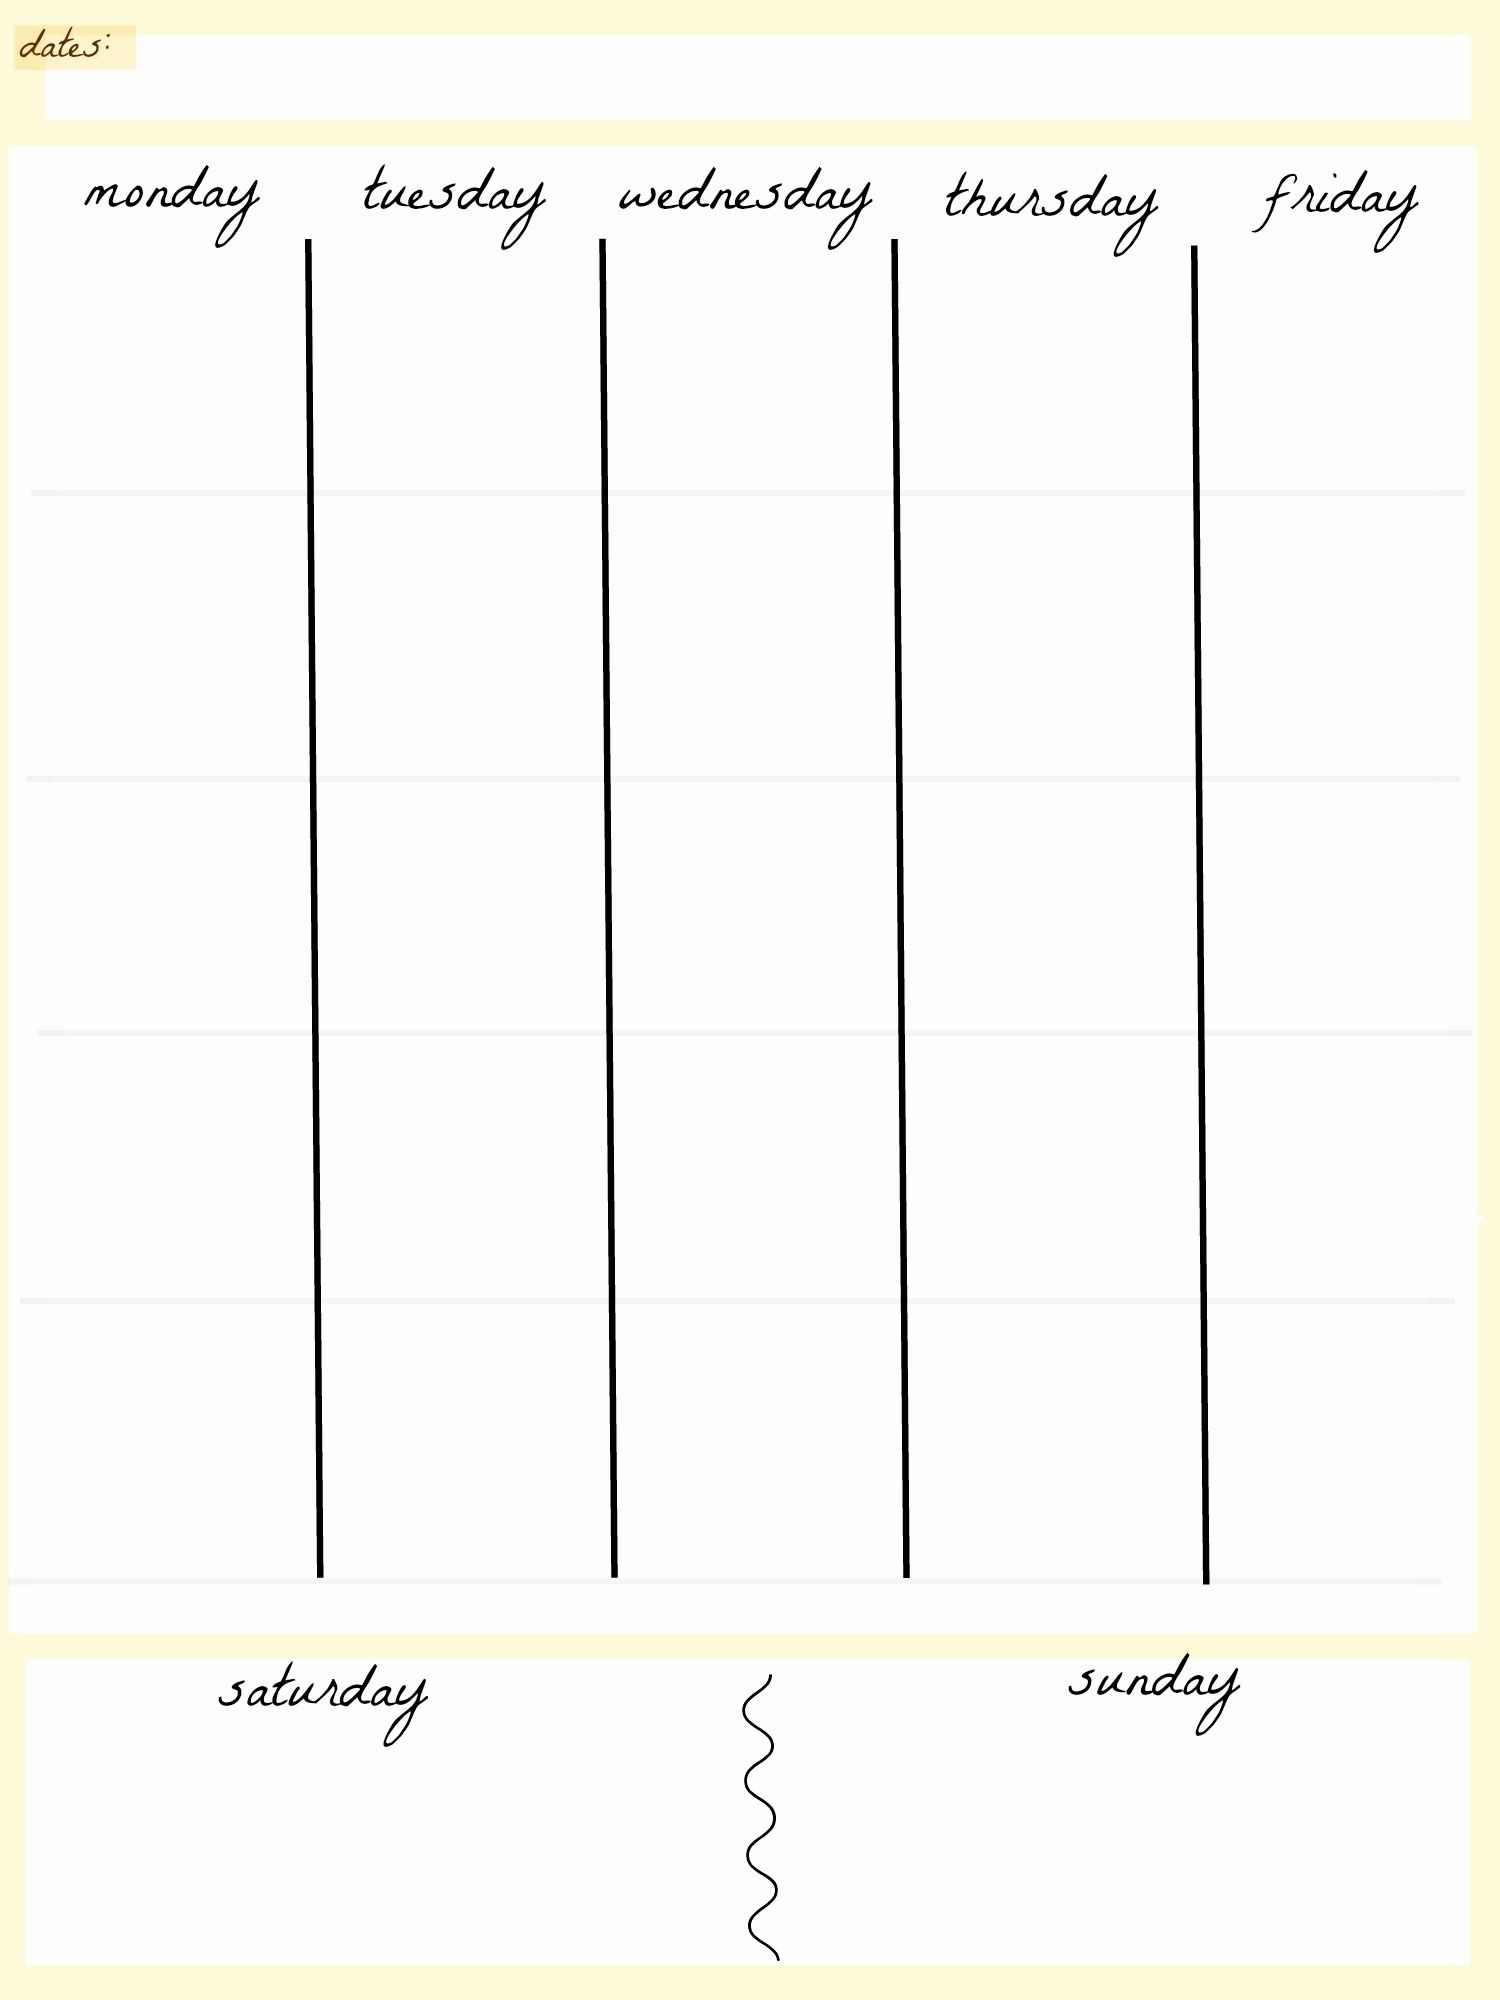 Blank Calendar 5 Day Week | Blank Calendar Template Dowload regarding Printable 5 Day Week Calendar